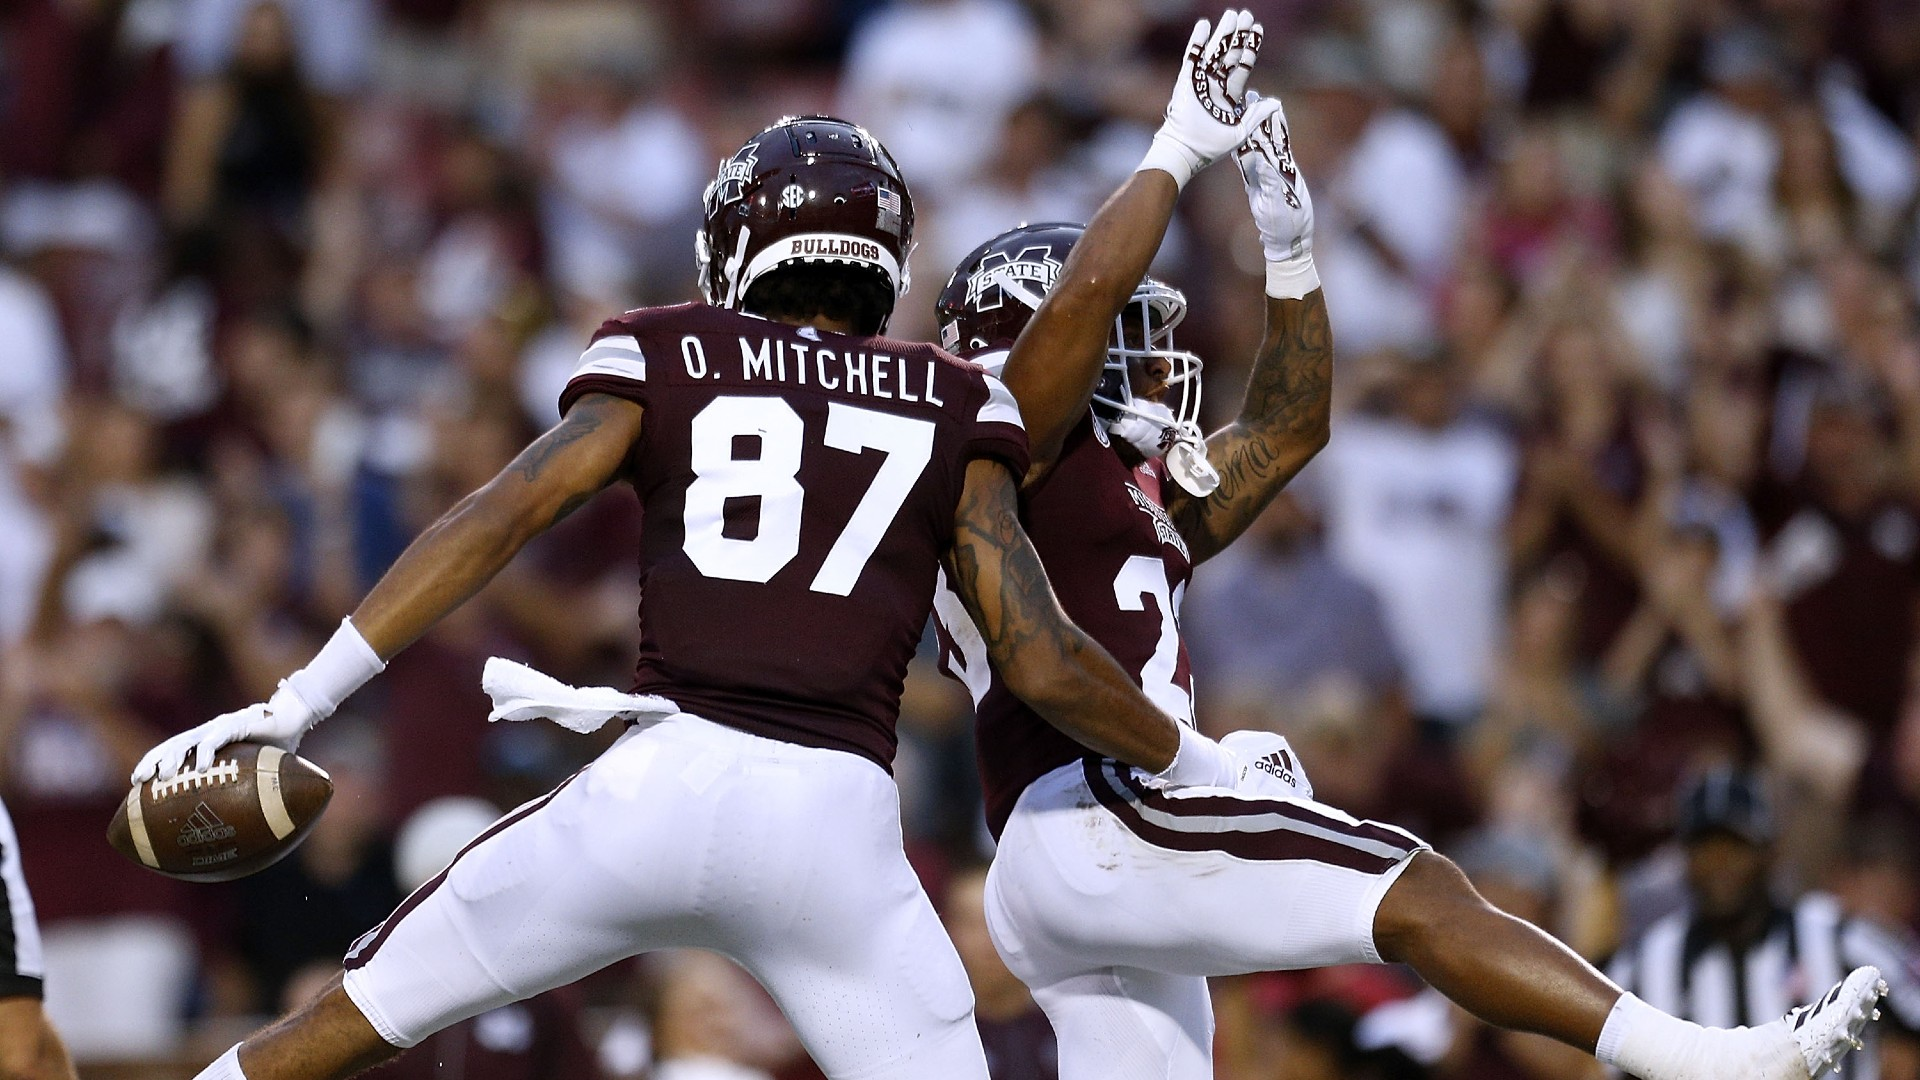 College Football Odds & Picks For Vanderbilt vs. Mississippi State: Betting Value on the Spread article feature image